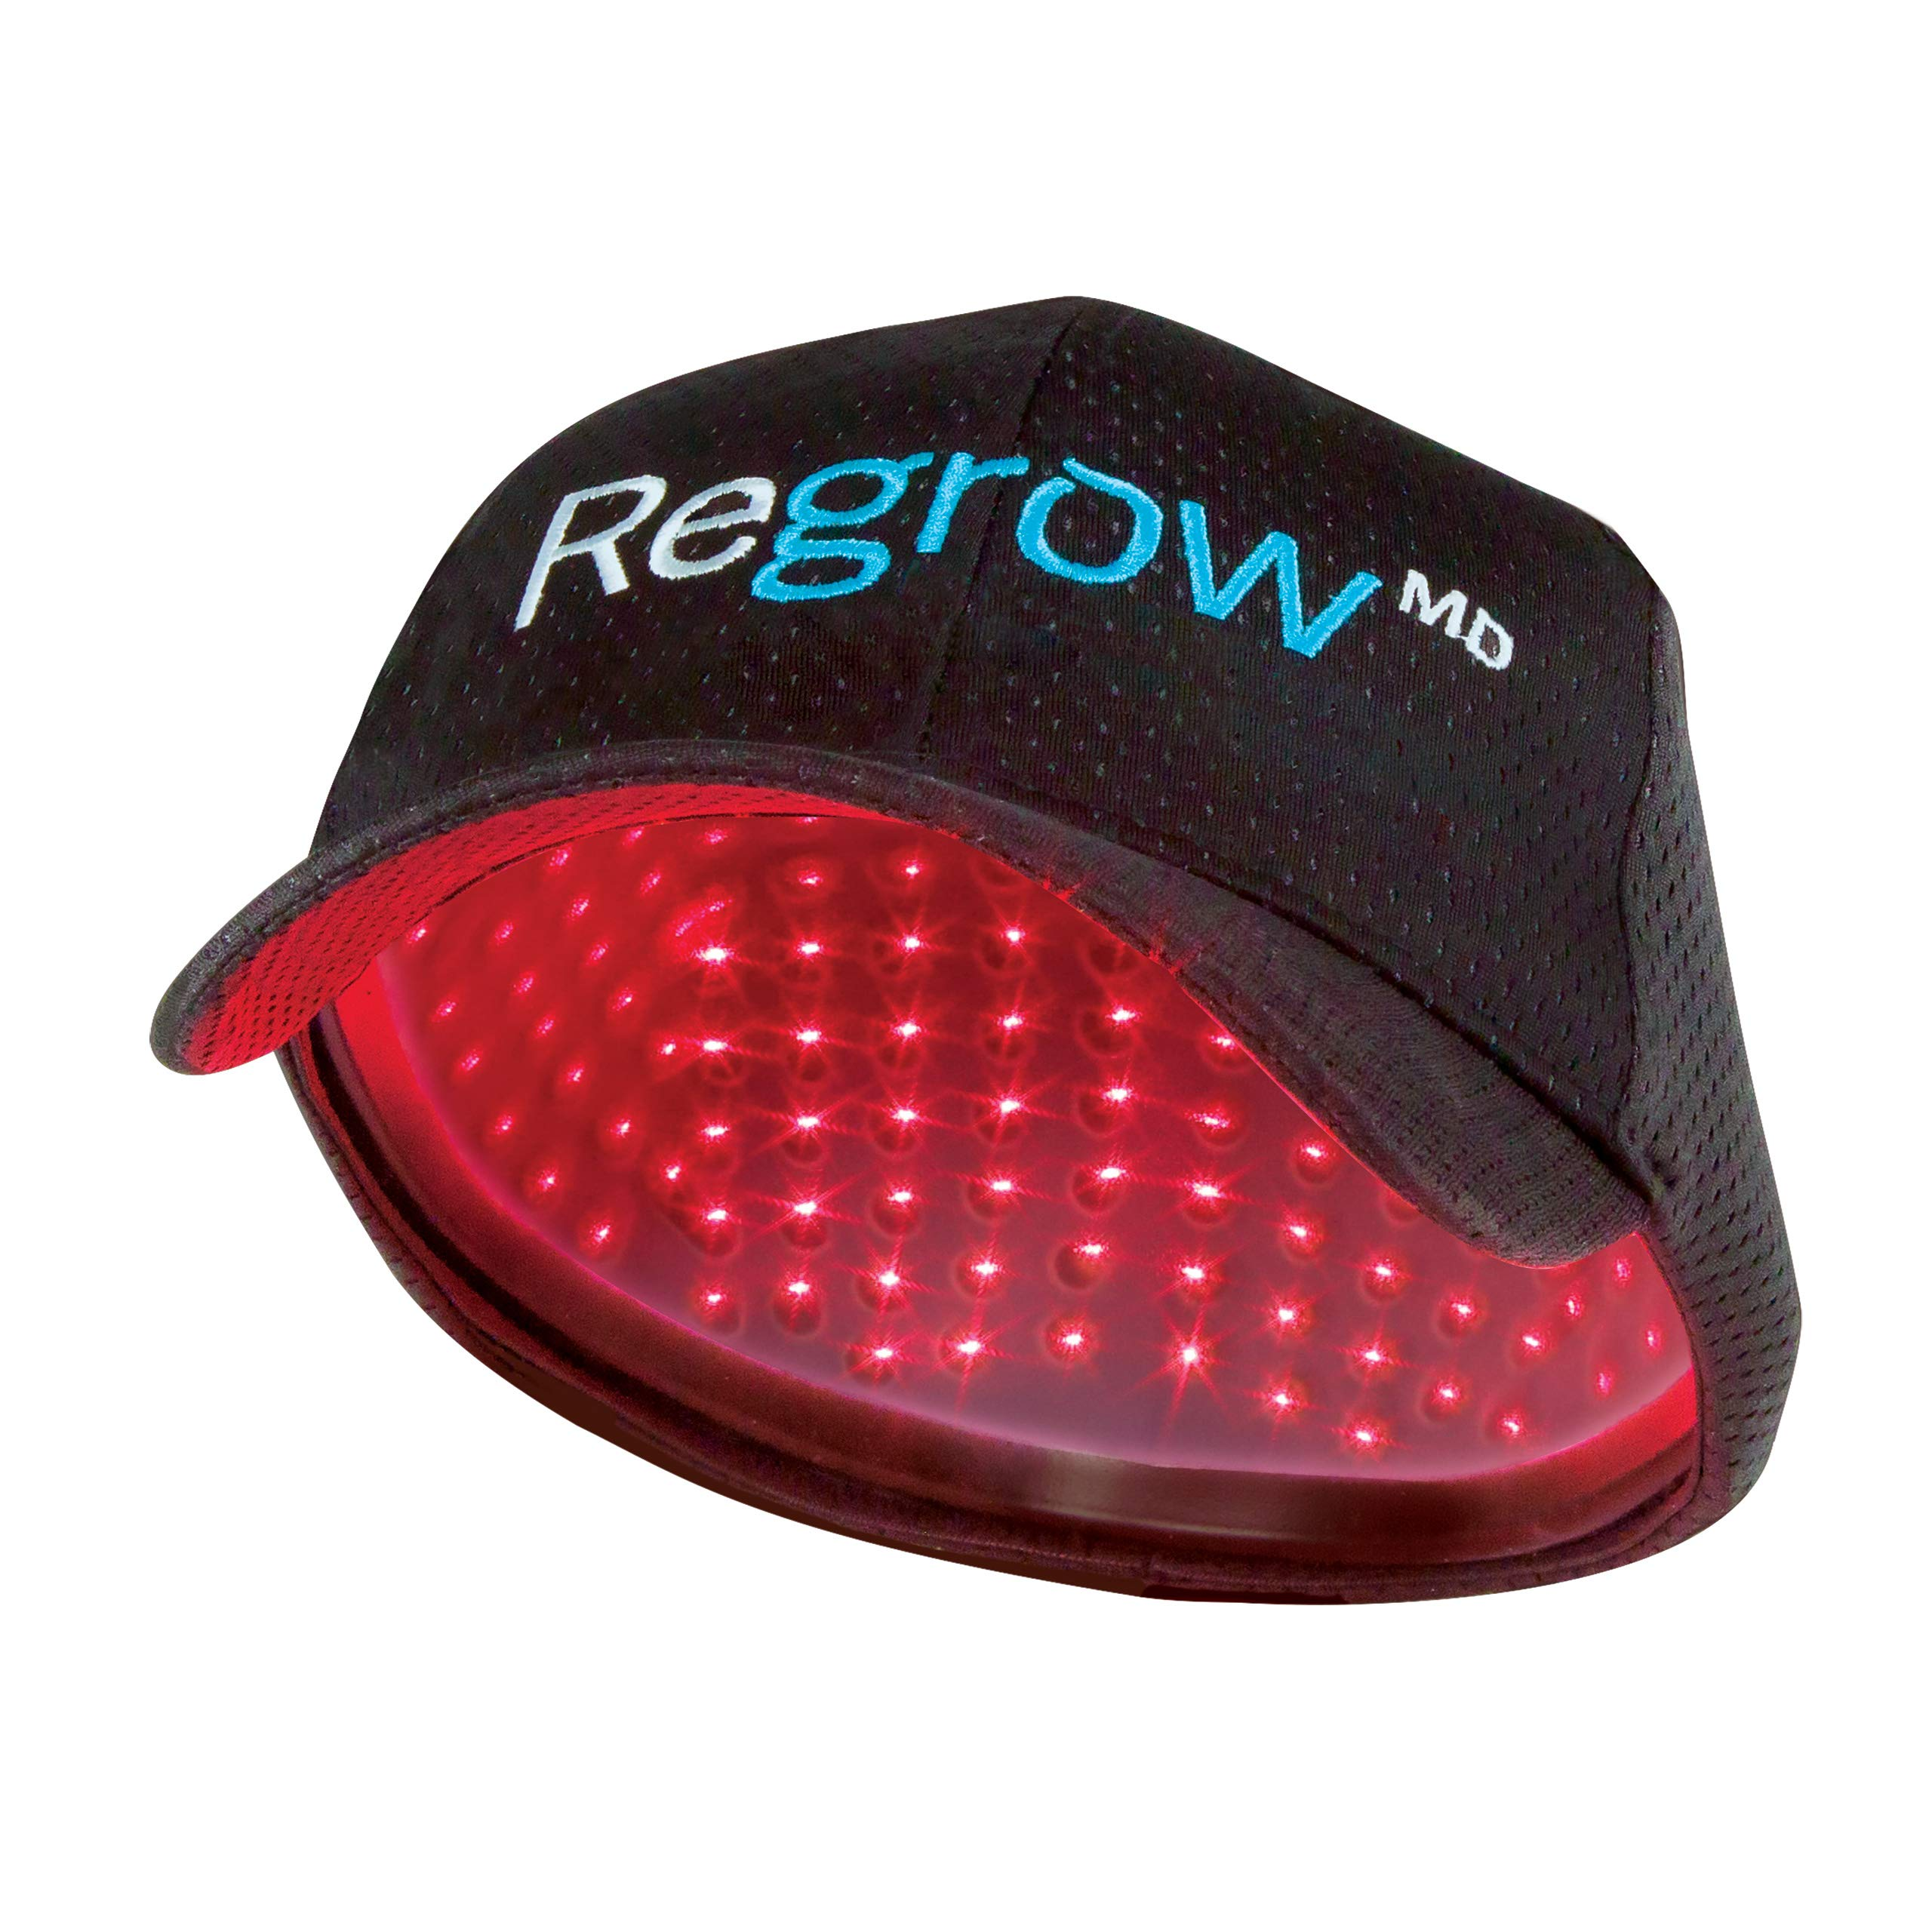 RegrowMD Laser Cap 272 (FDA Cleared). 272 Medical Grade Lasers. Stimulate Hair Growth, Reverse Thinning, Regrow Denser, Fuller Hair. Exclusive BioLight Comfort Design, Superior Treatment. by HairMax